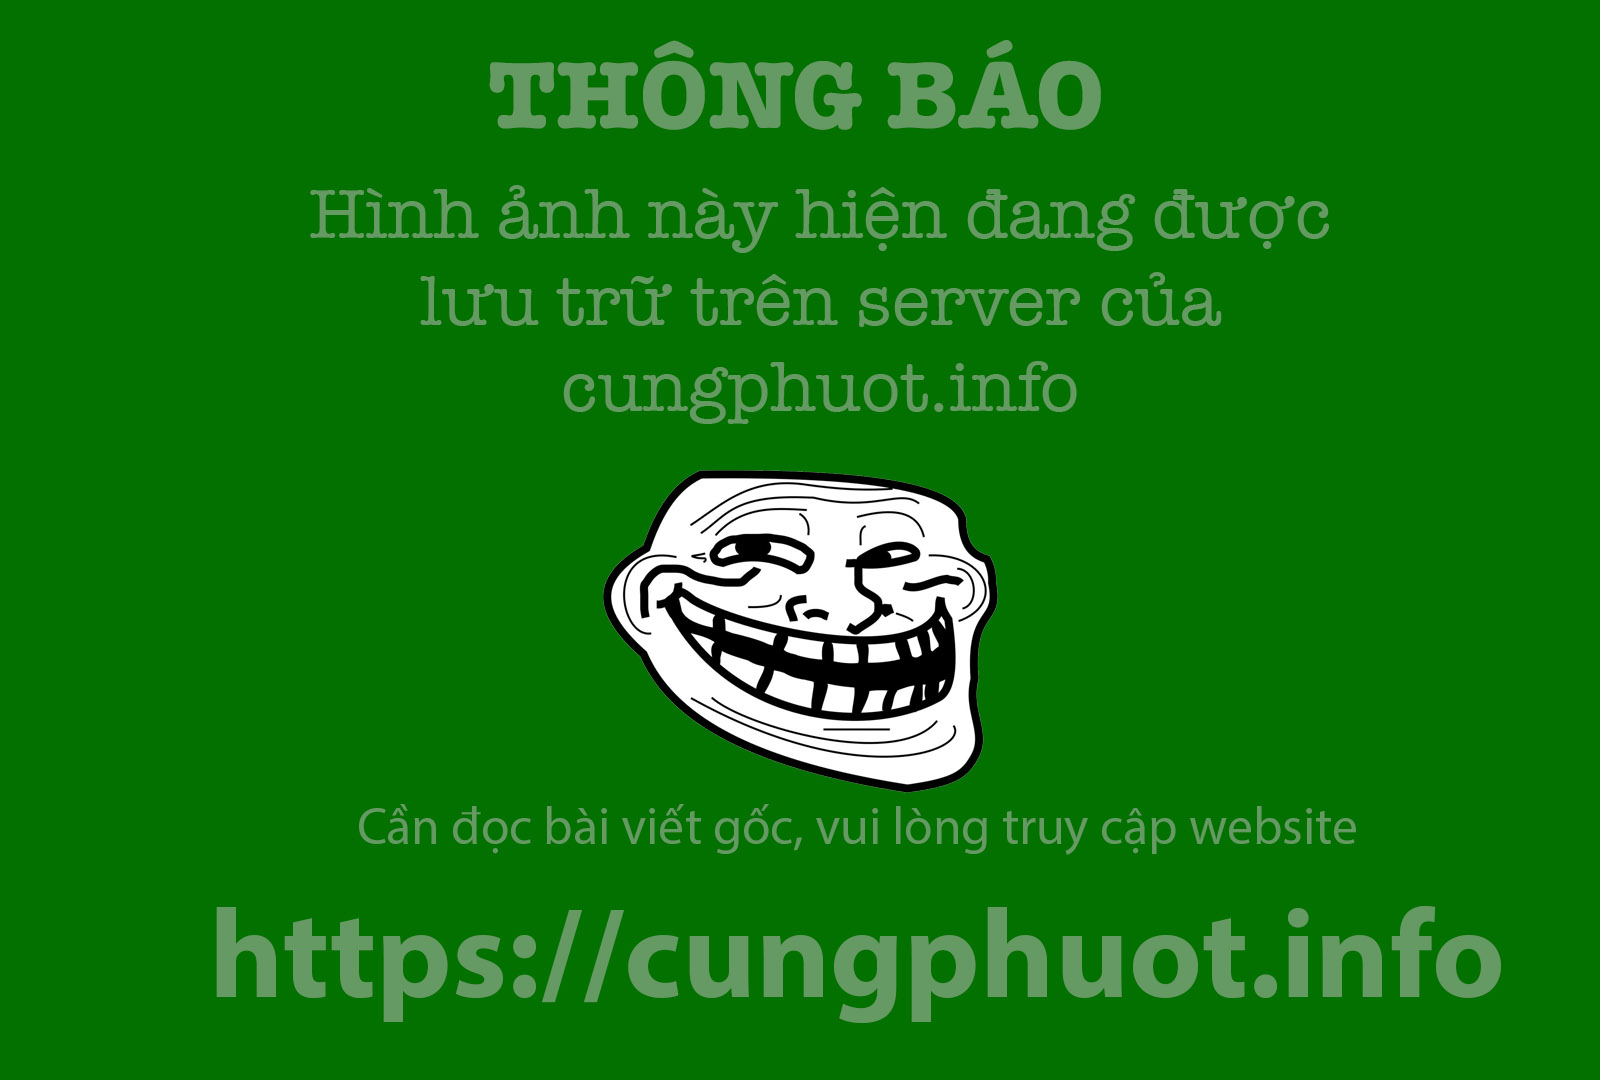 Buses to Nam Dinh